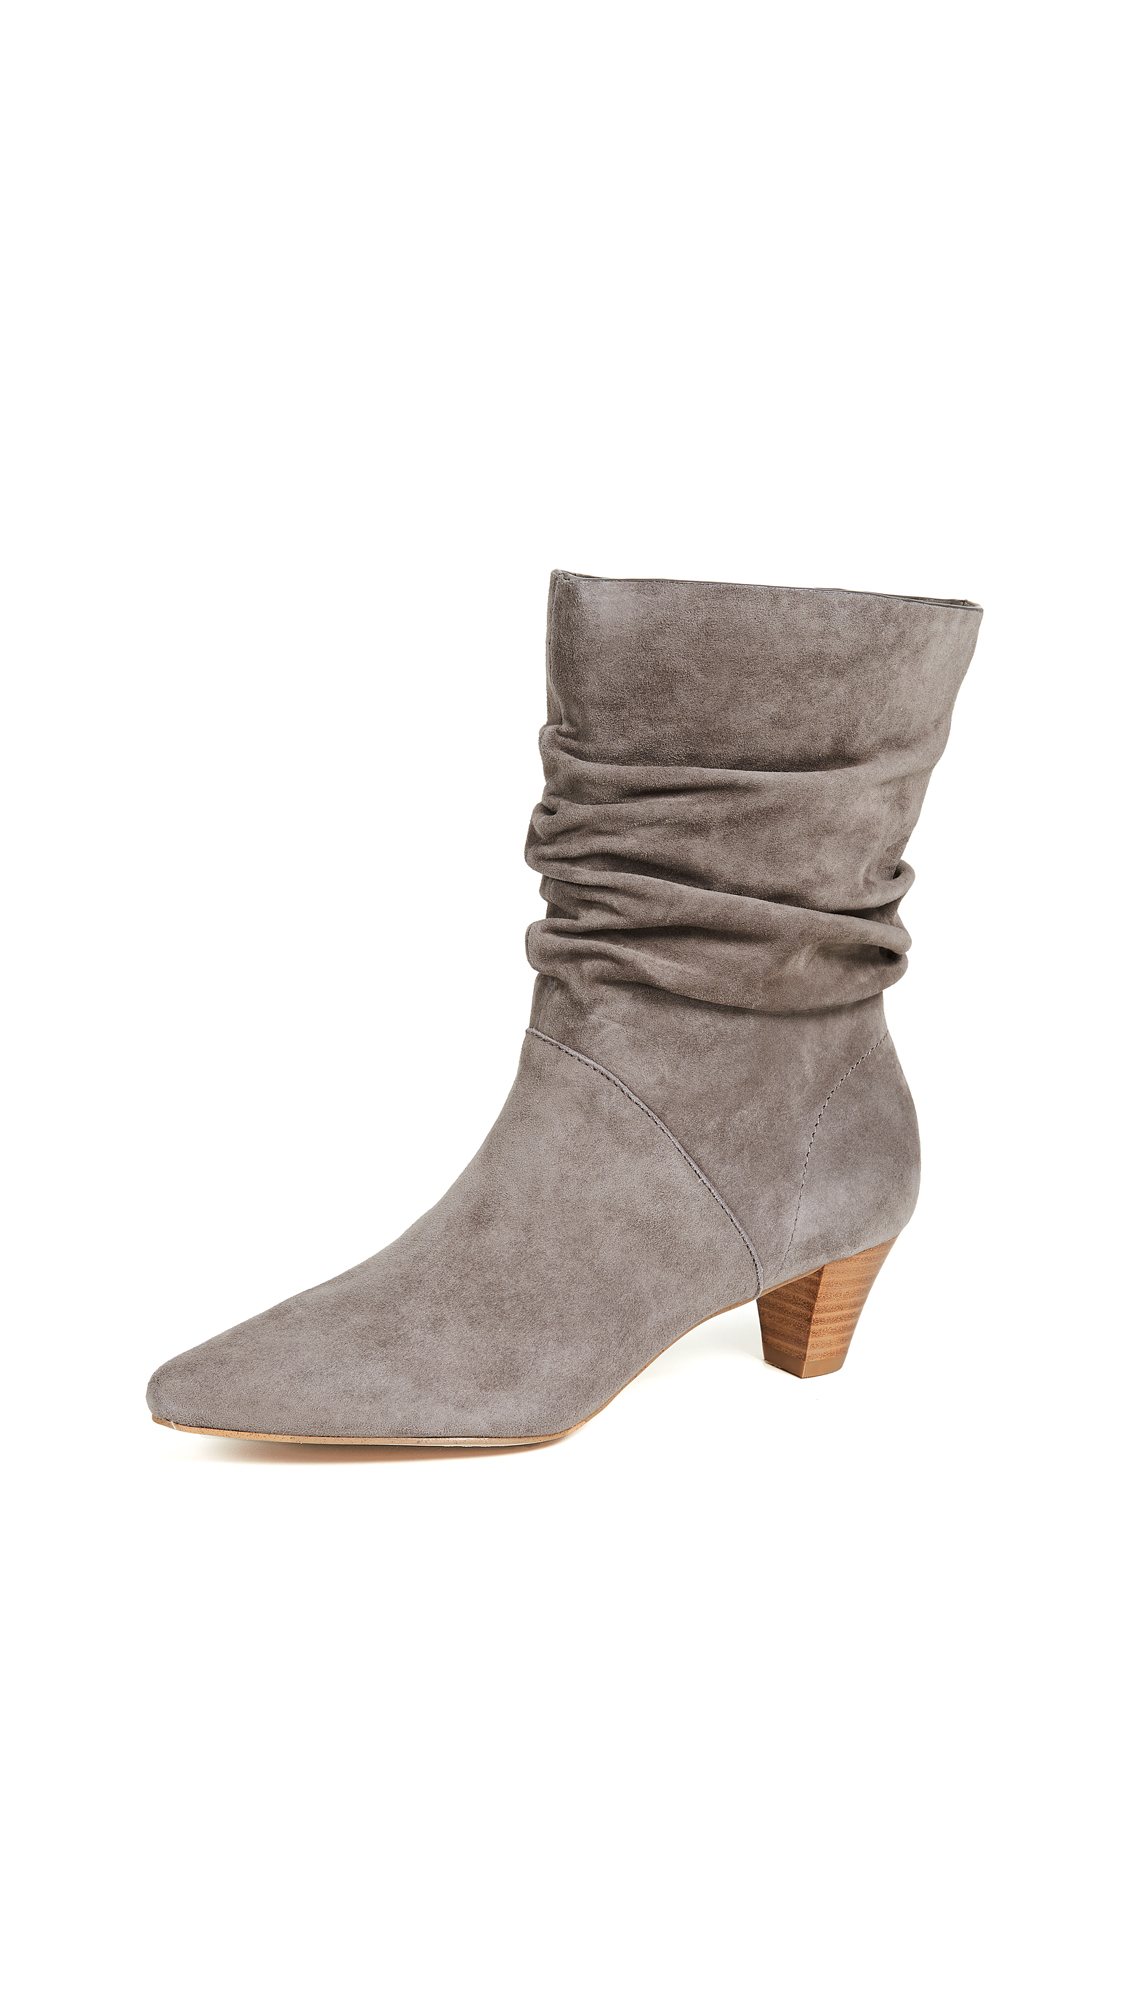 Splendid Nica Scrunchy Boots In Light Charcoal